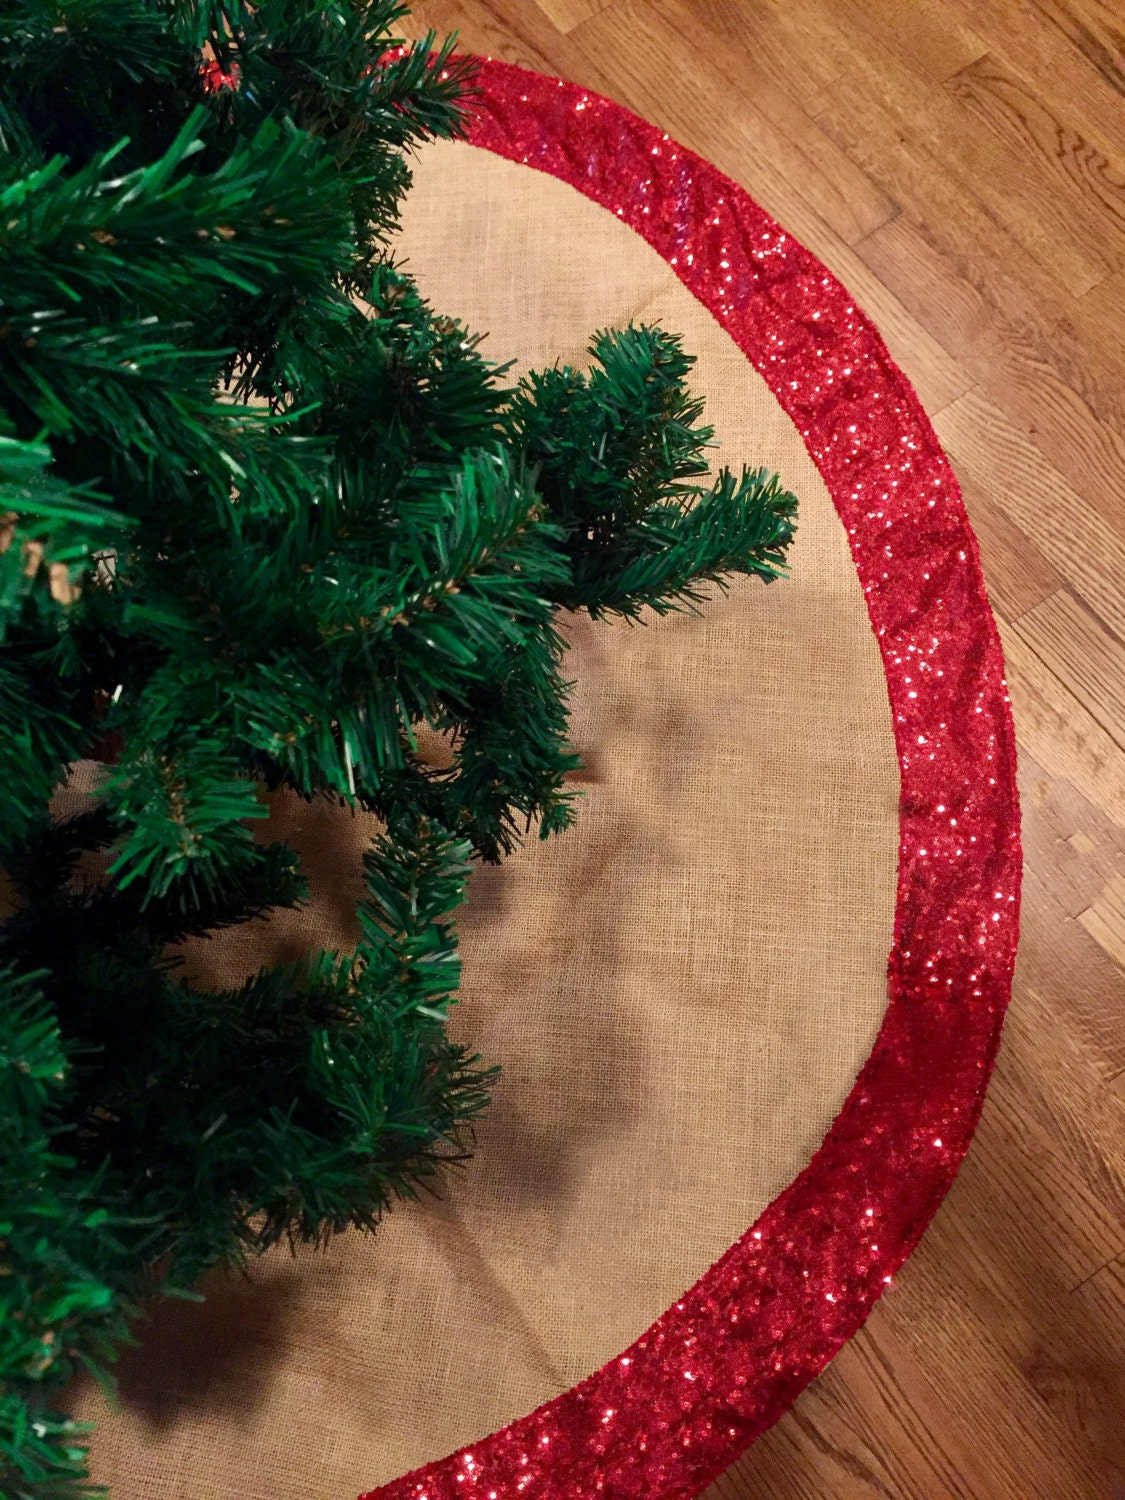 Christmas Tree Skirt Burlap And Gold Or Red Sequence Christmas Tree Skirt Tree Skirt 60 Inches Diam Christmas Decor Sequin Sequence